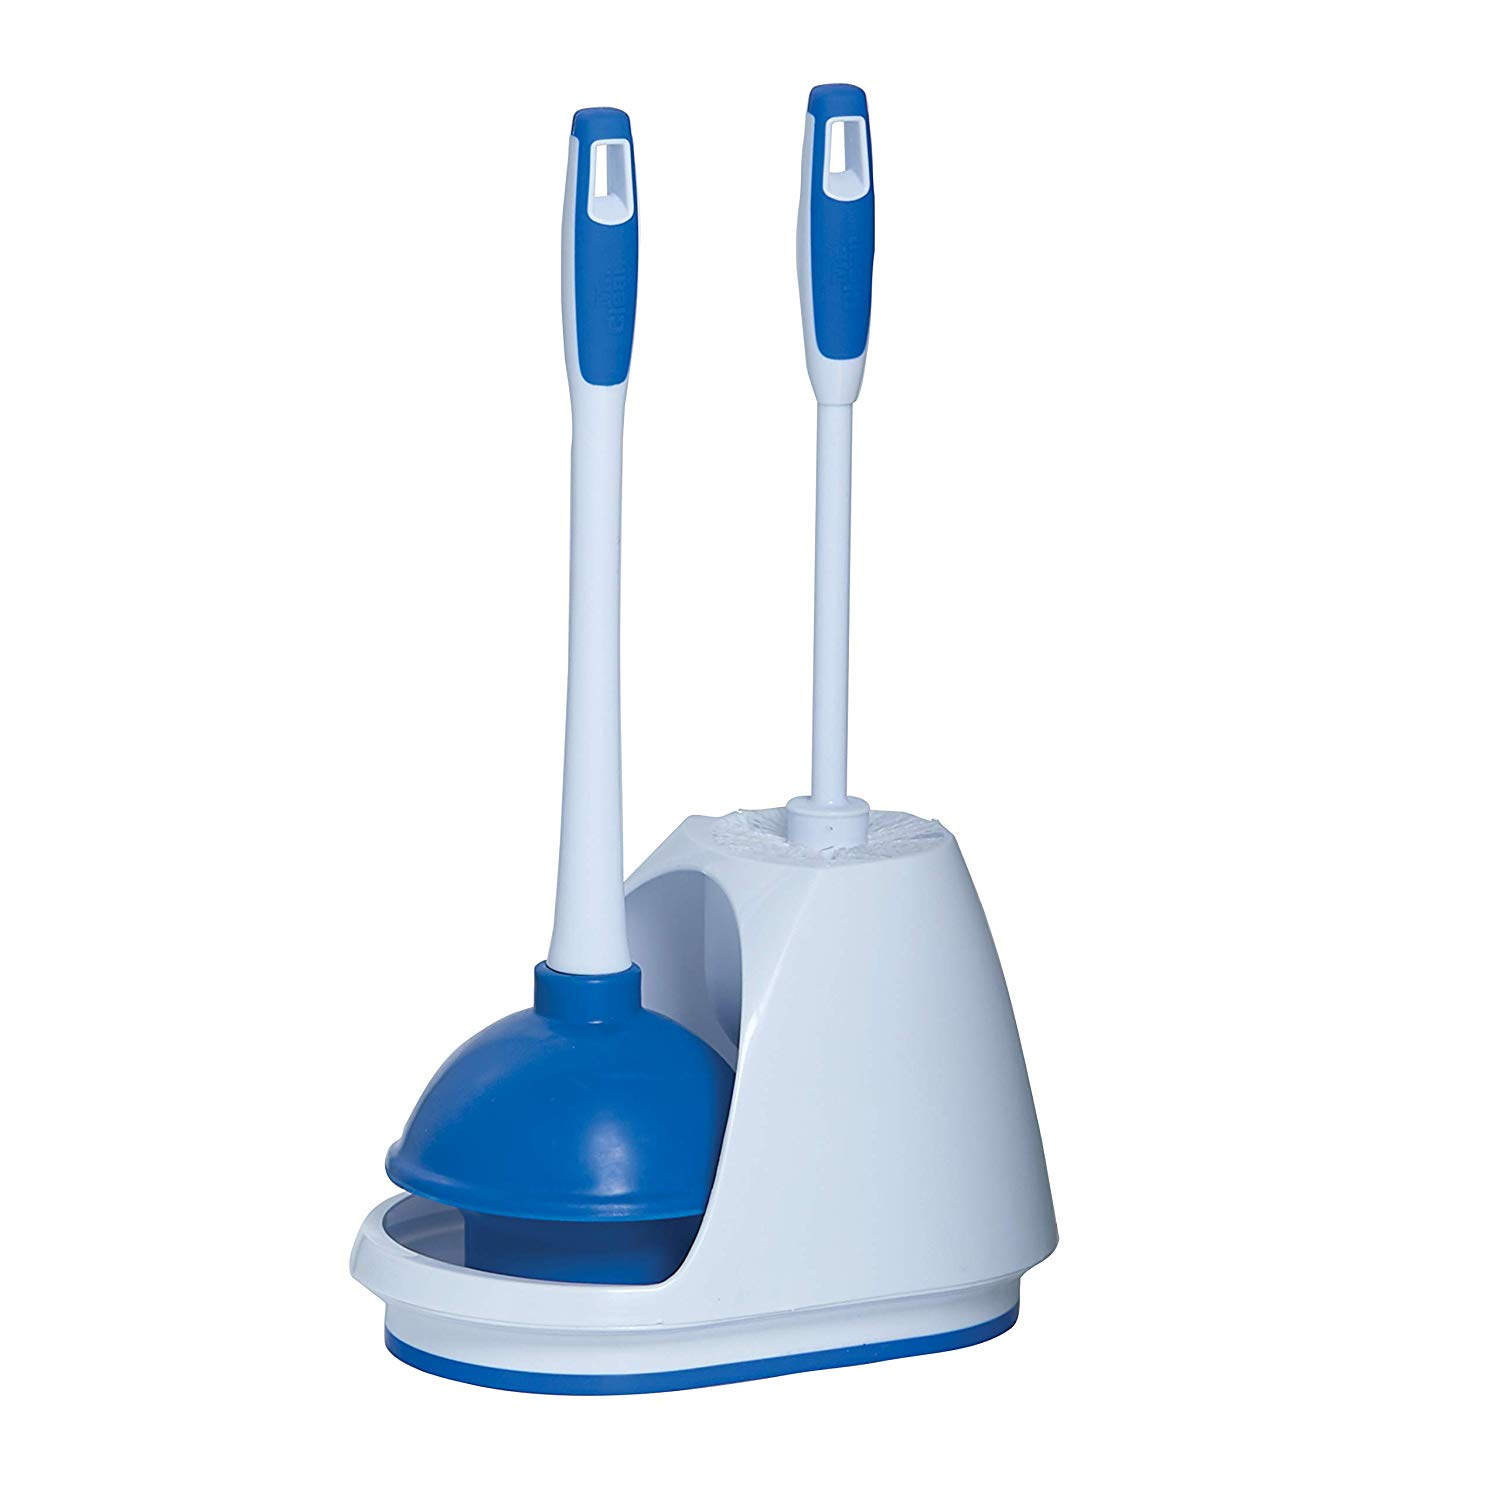 MR. CLEAN TURBO PLUNGER AND BOWL BRUSH CADDY SET TOILET BRUSH